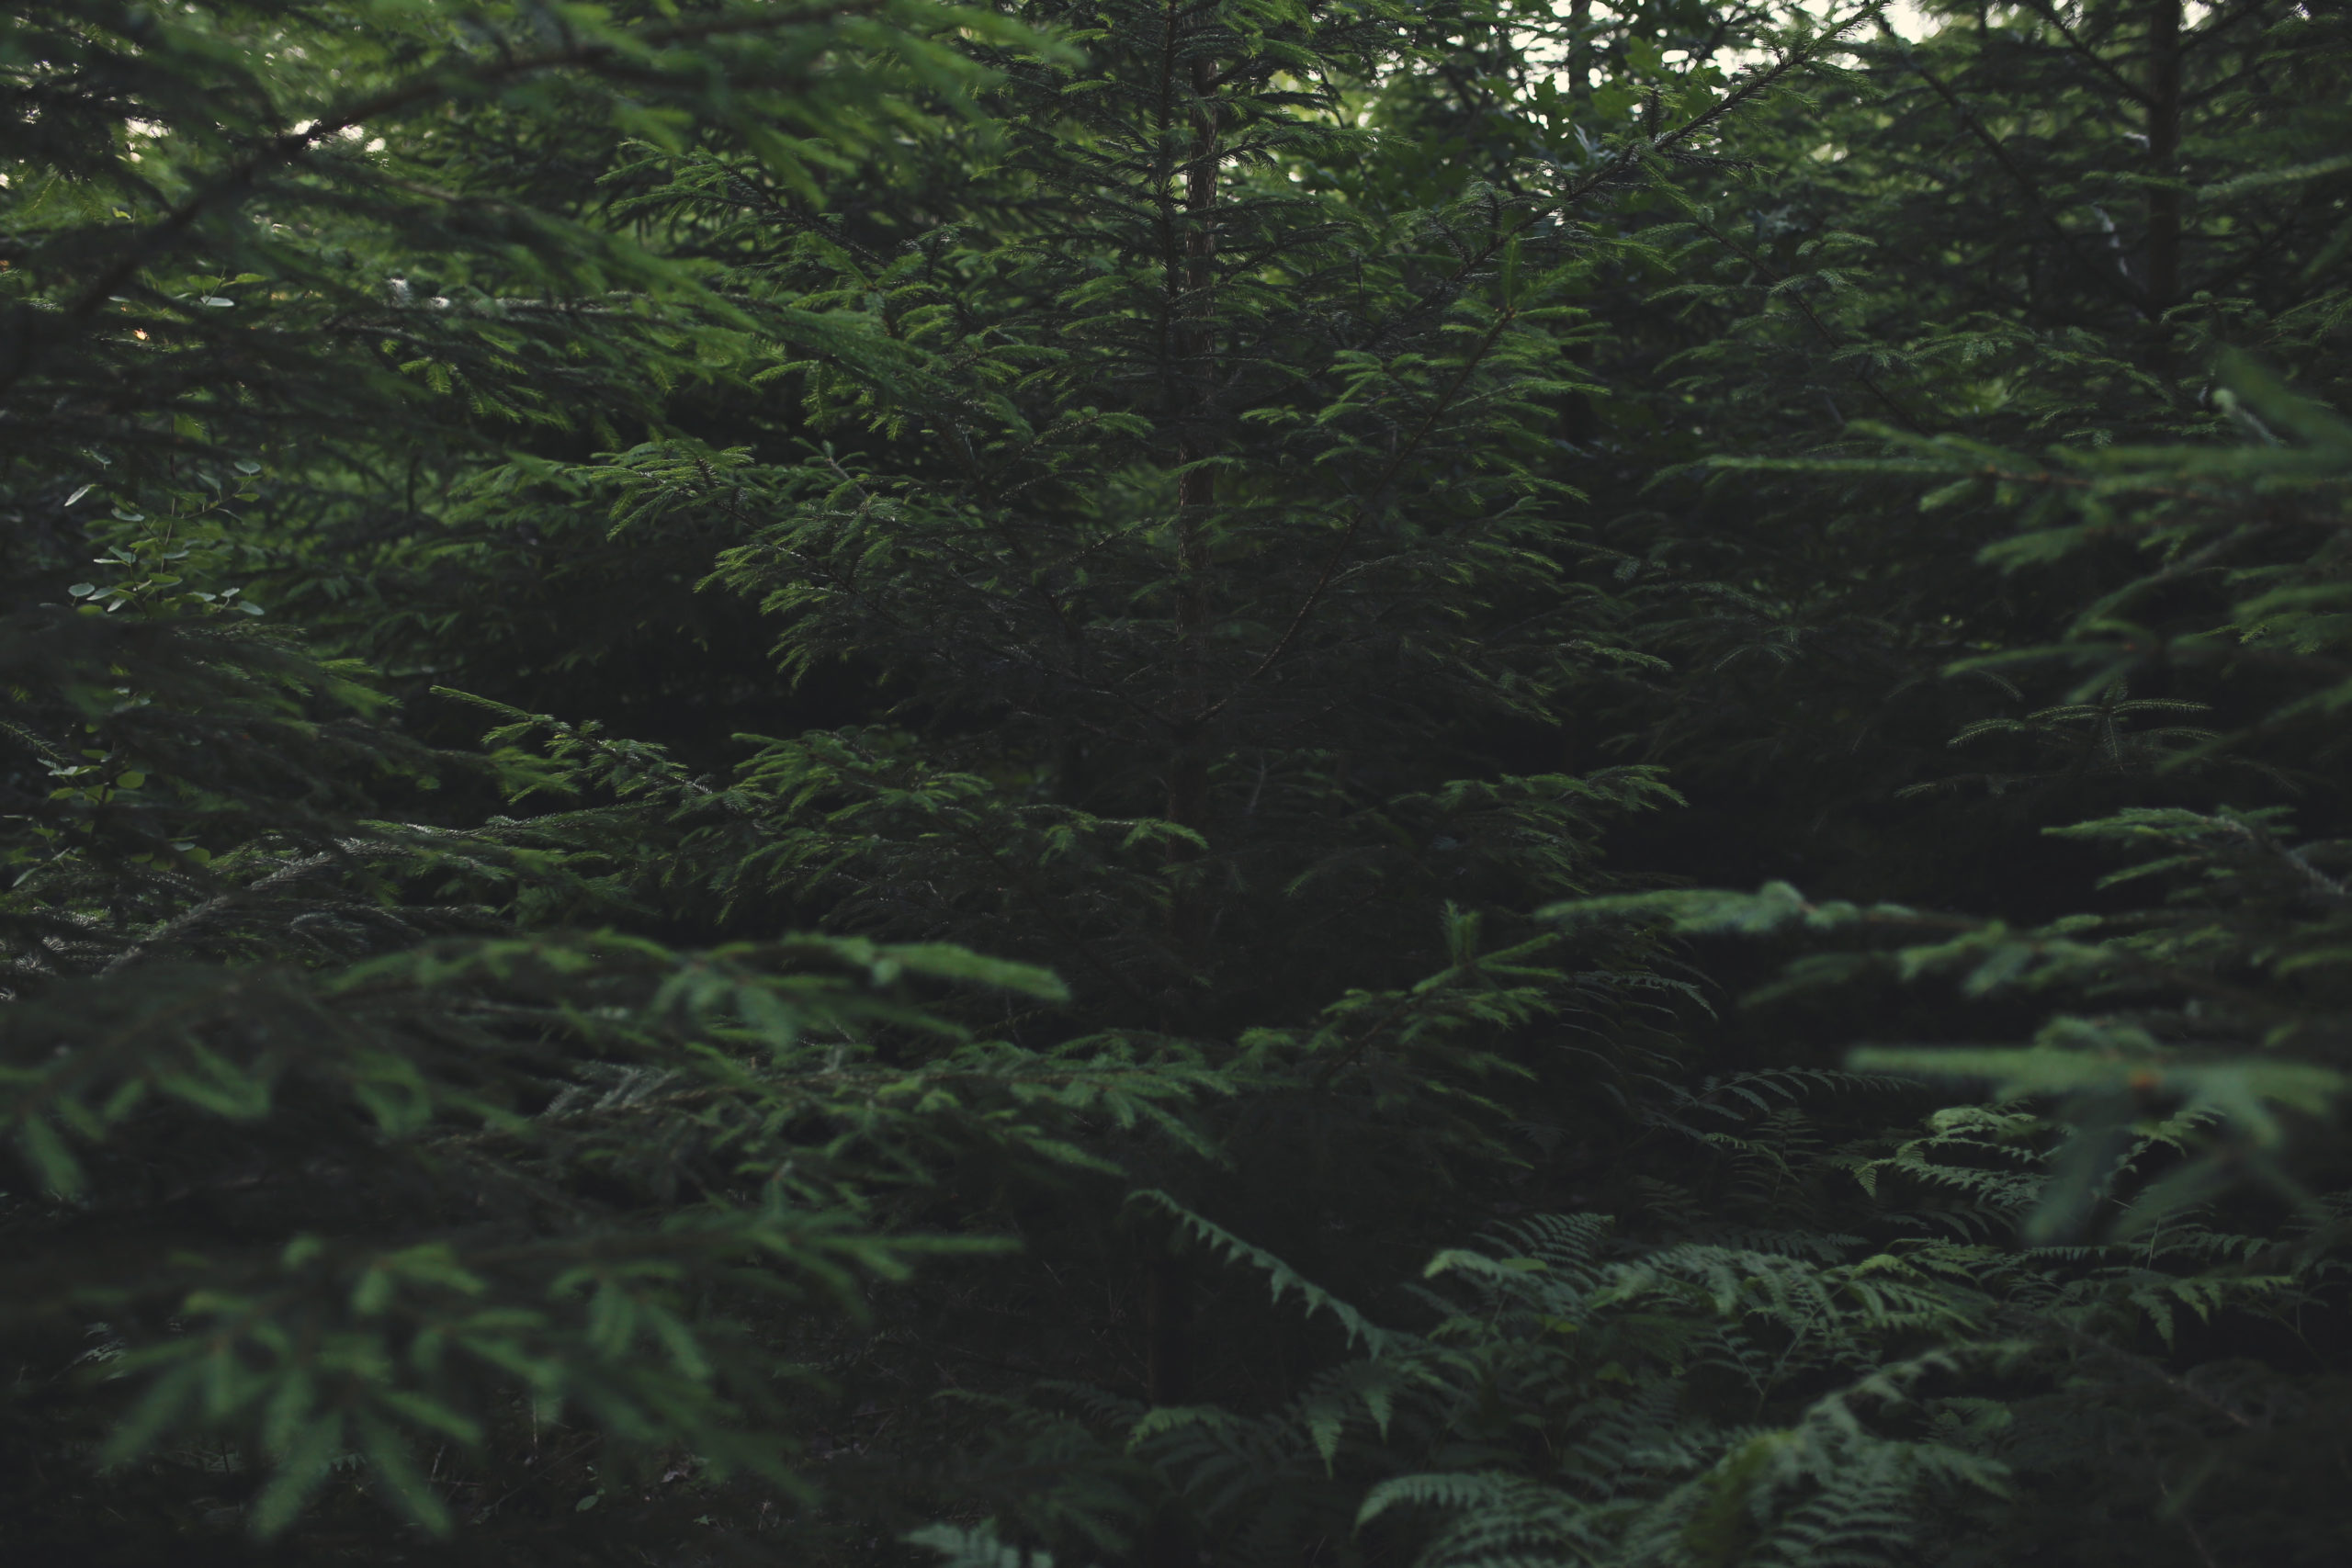 Free photo of spruce trees